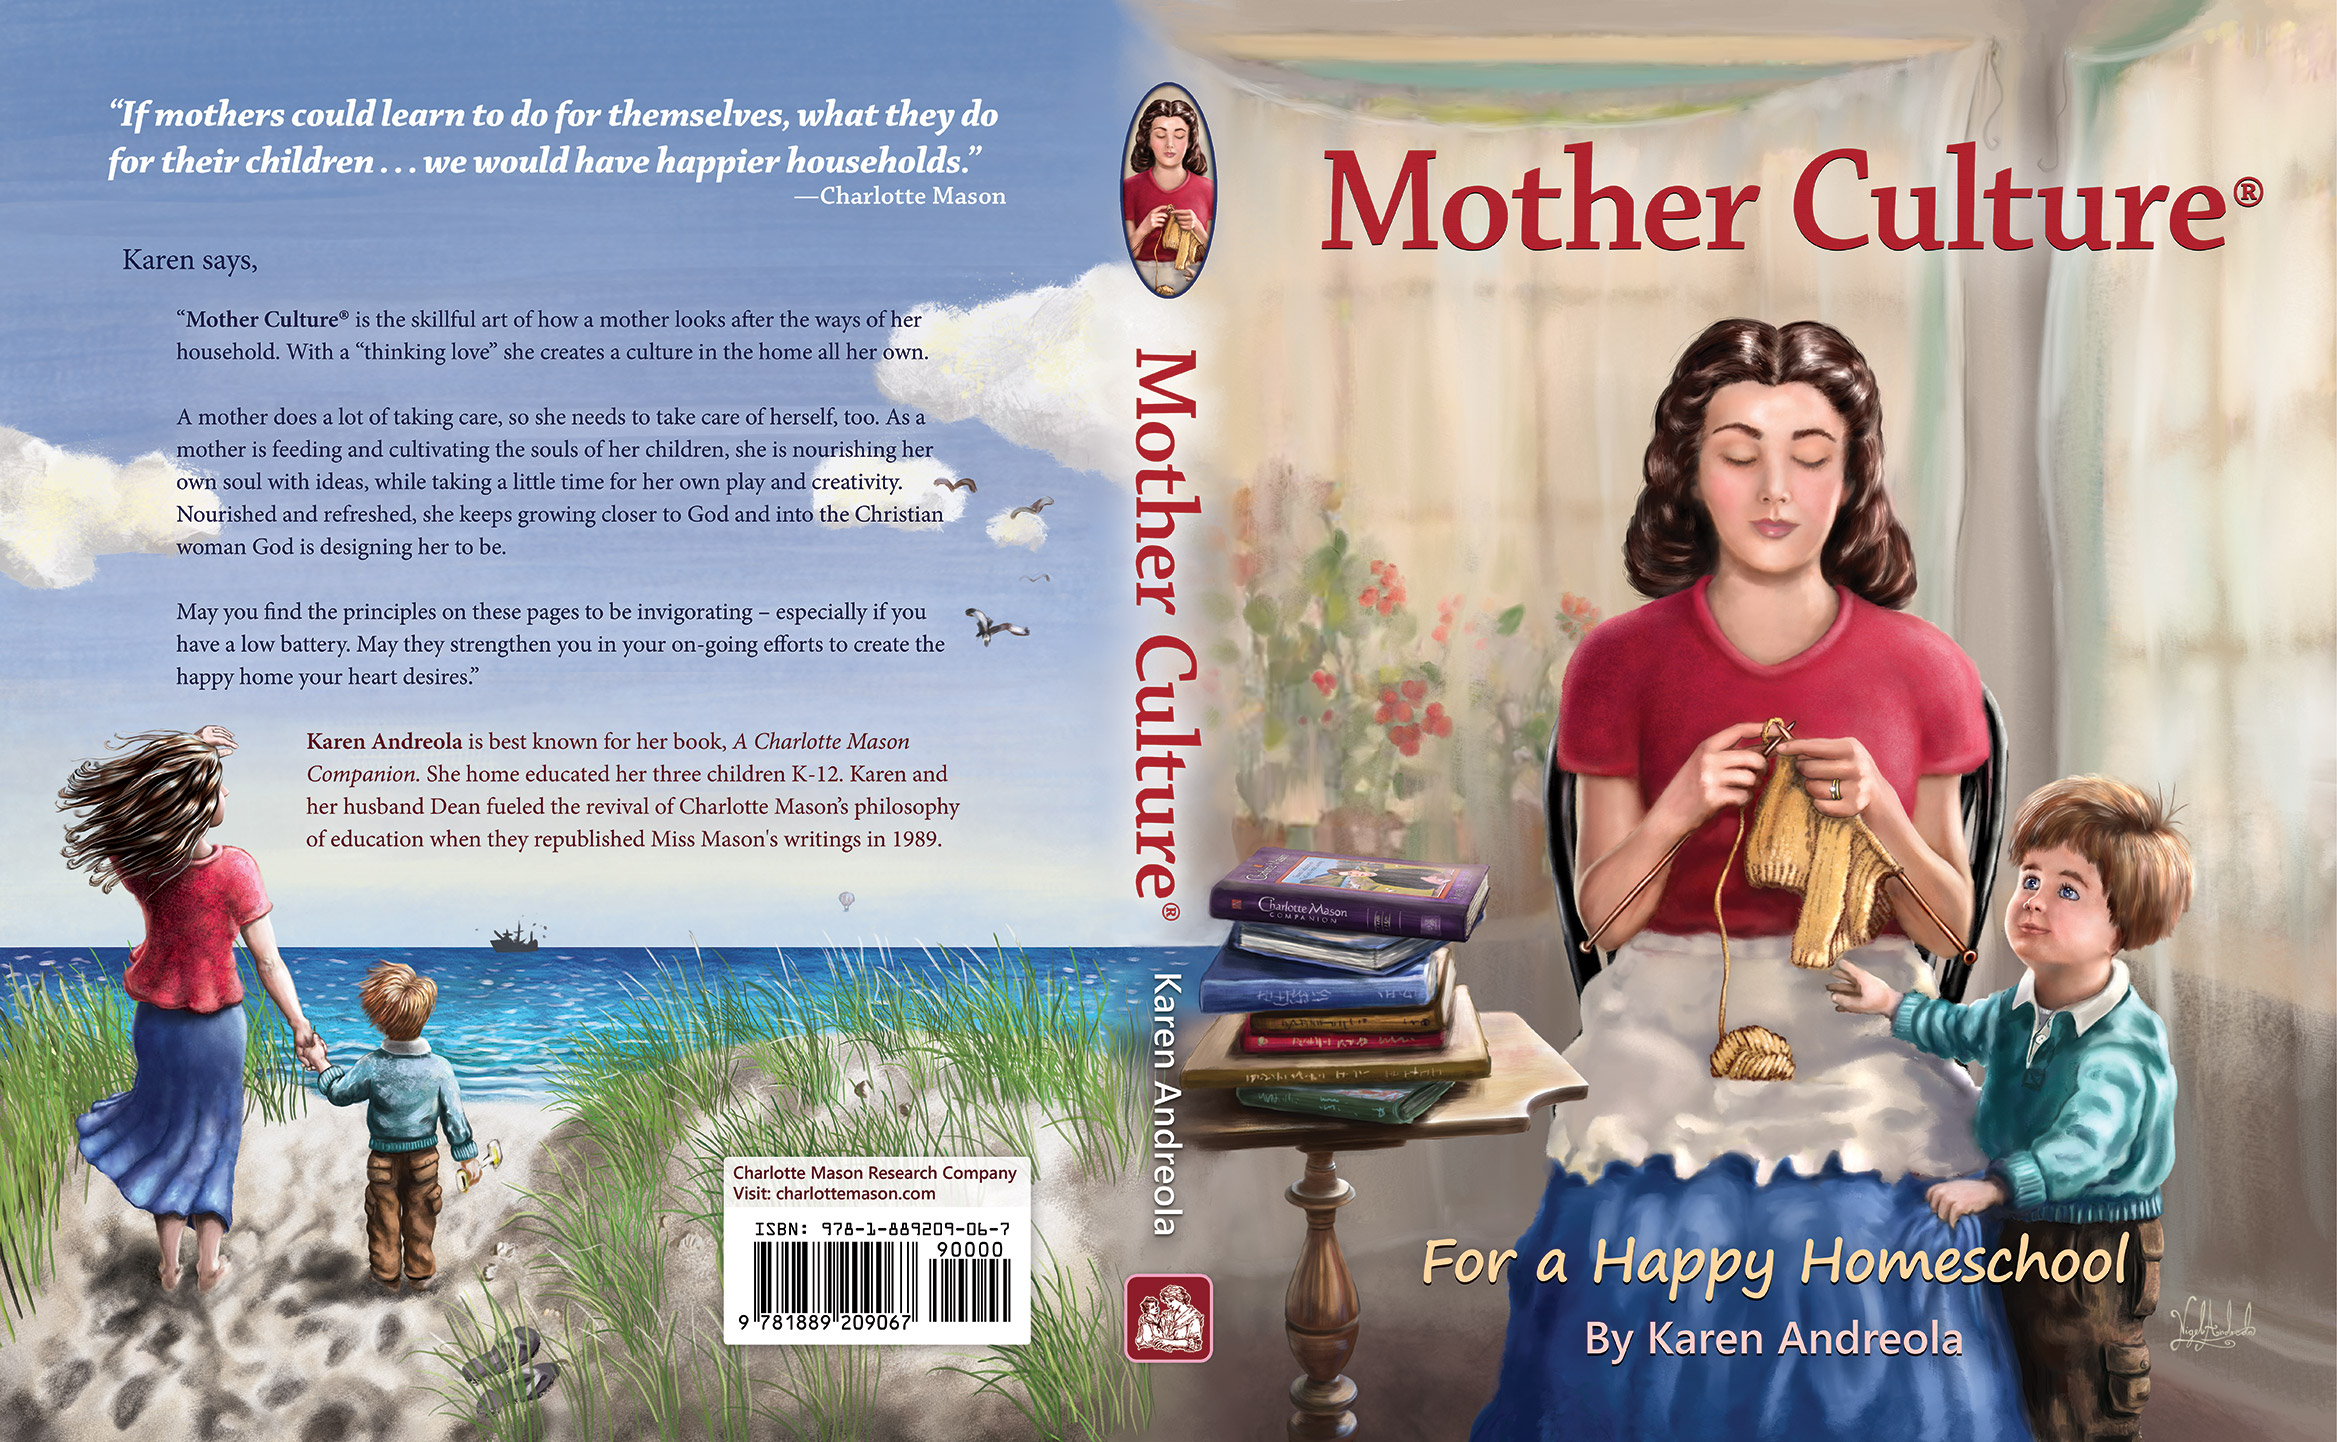 Mother Culture book cover front and back by designed by Starry Night Melodies LLC painted by Nigel Andreola